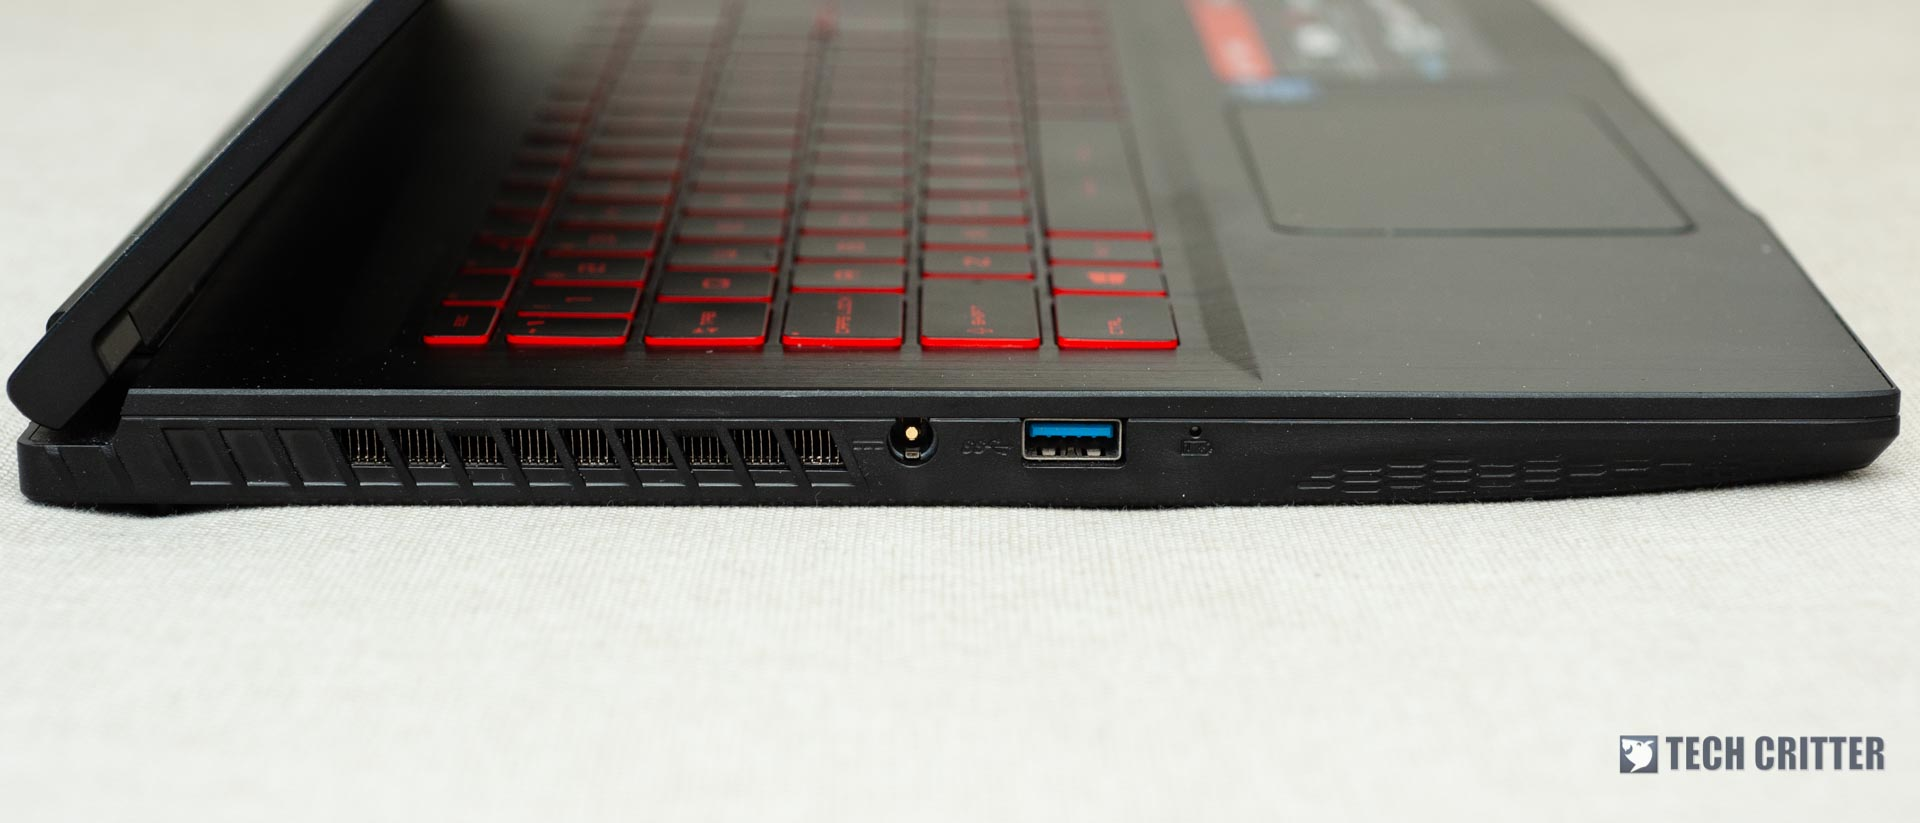 Review - MSI GF63 8RC Gaming Notebook (i7-8750H, 8GB